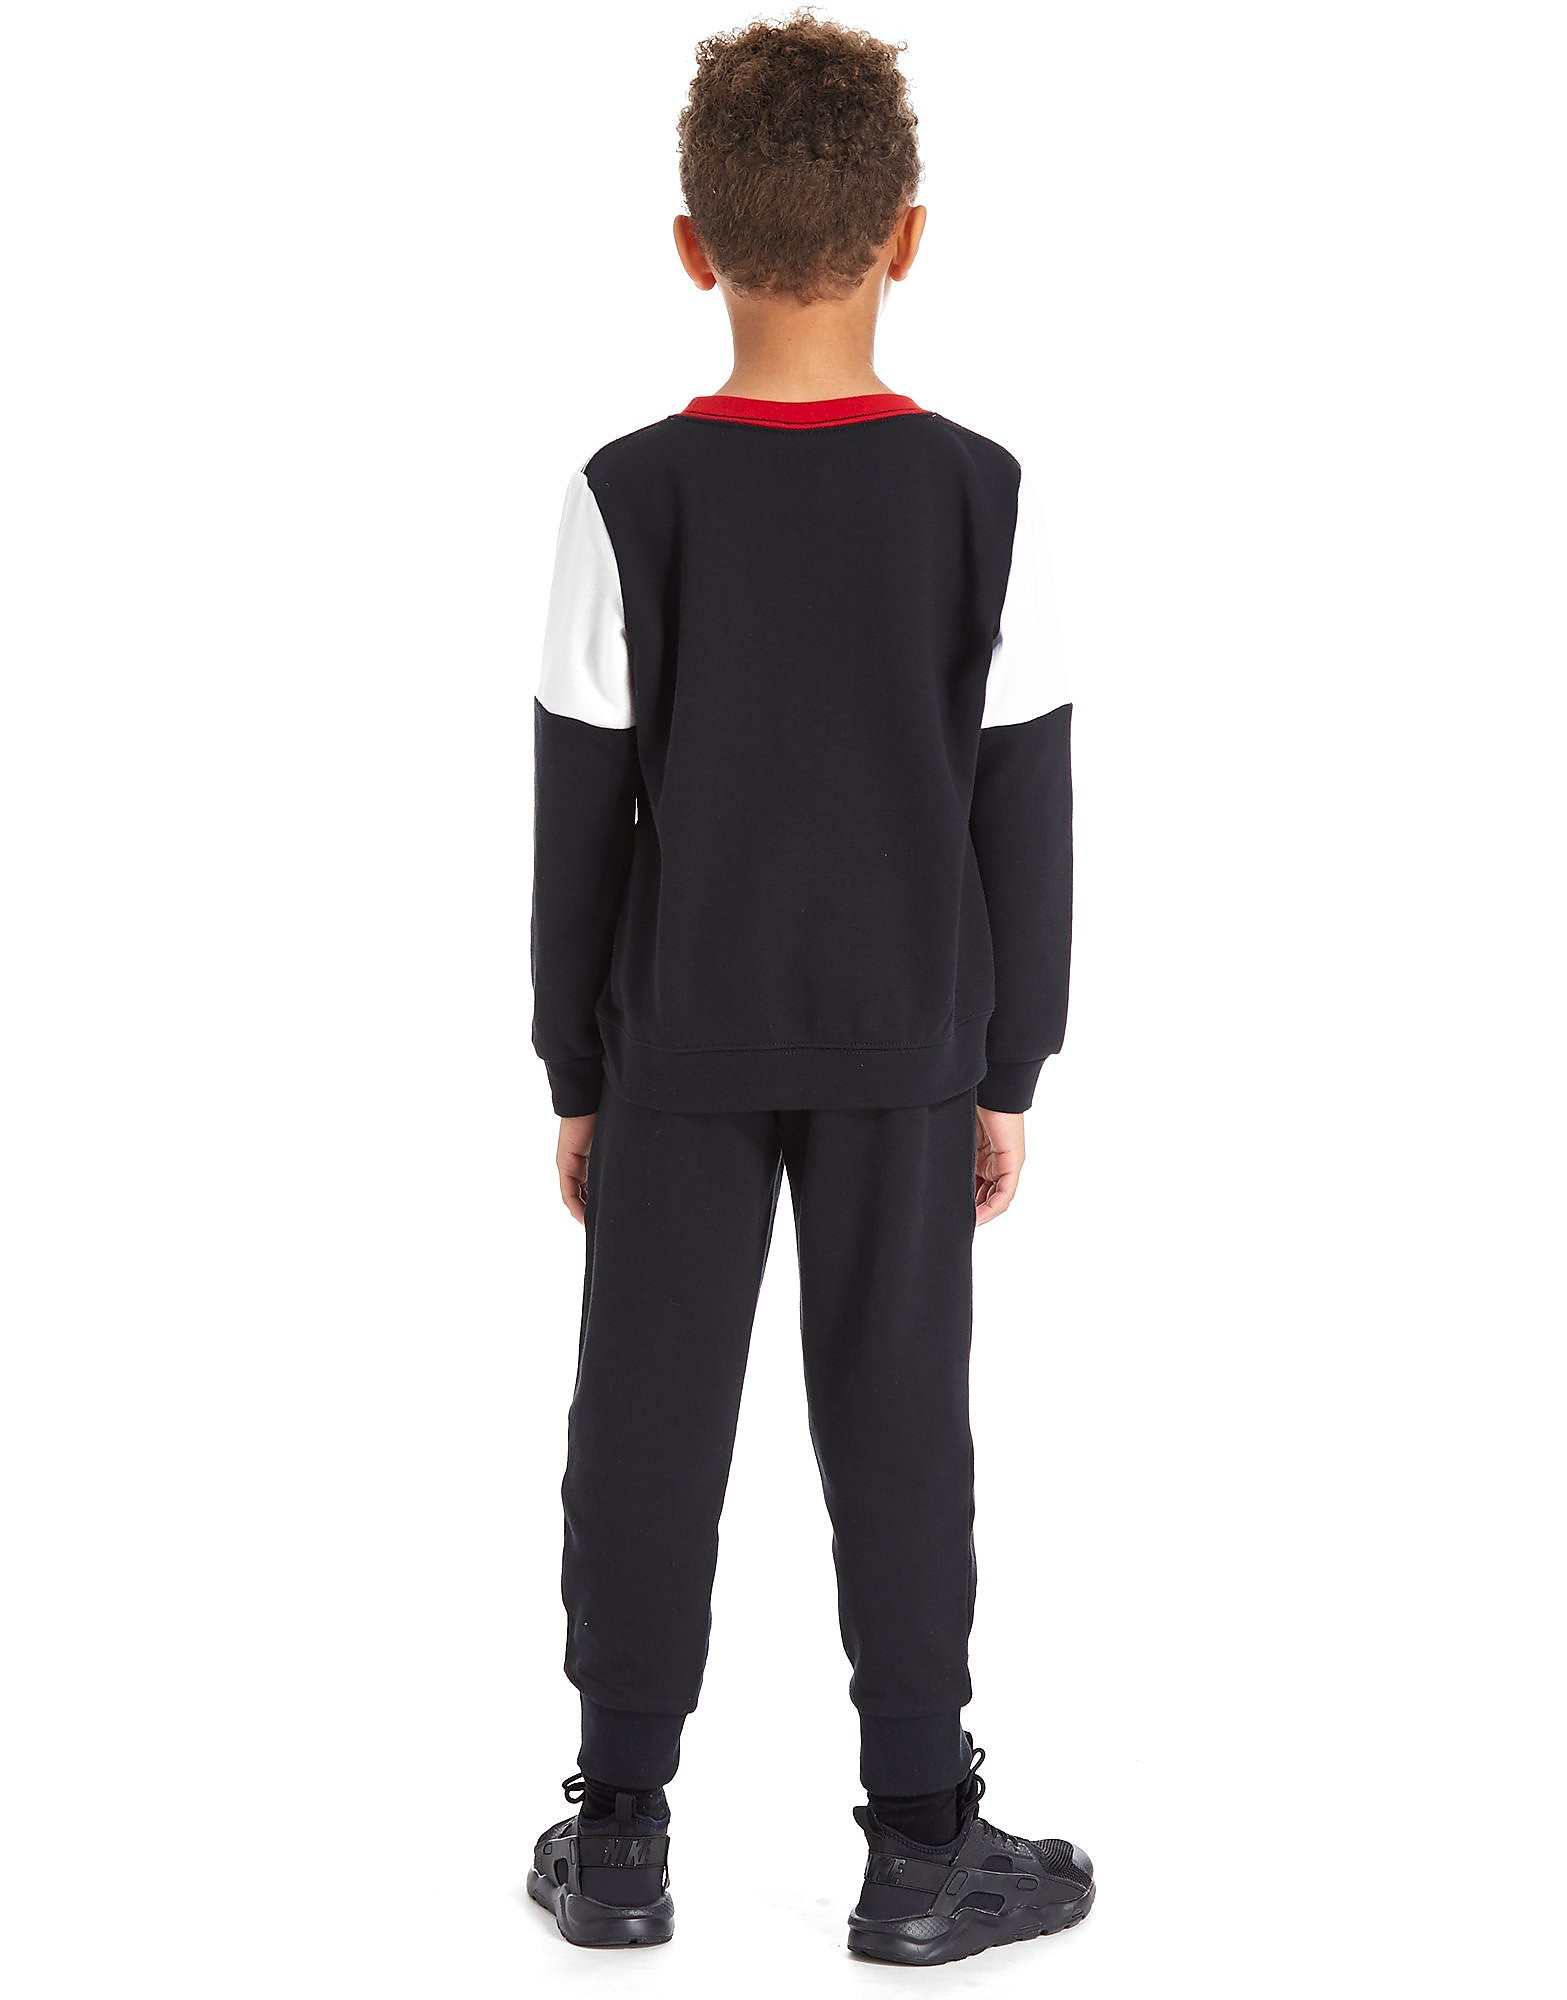 Jordan Wing It crew Jumpsuit Children